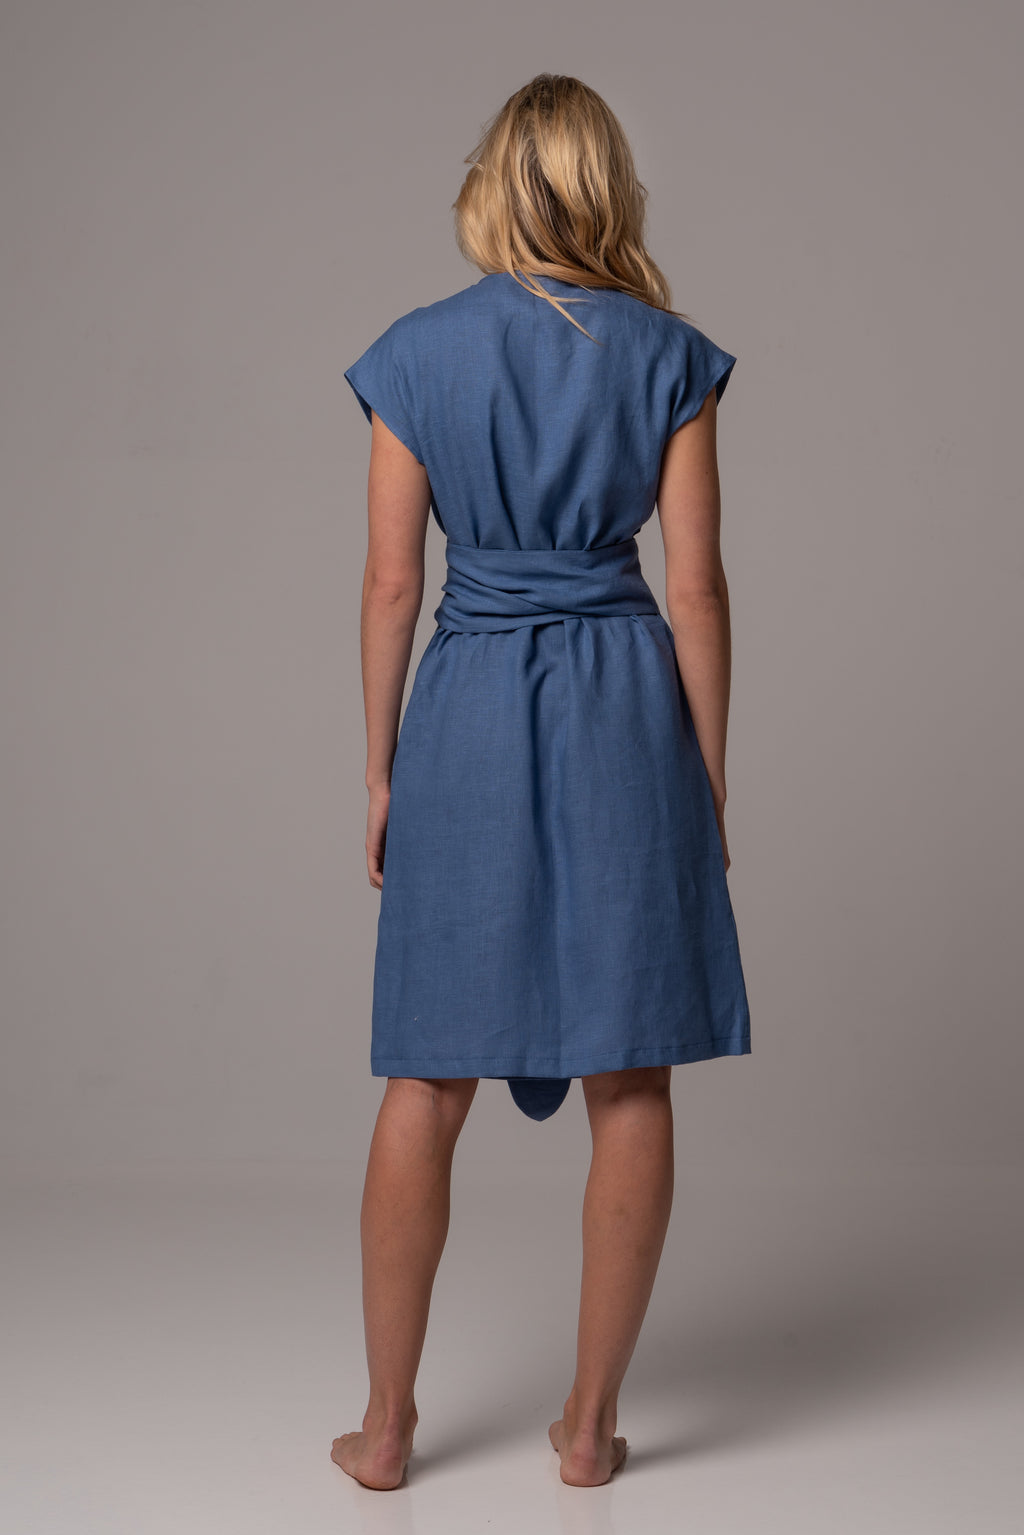 Endless Sea Wrap Dress in Premium European Linen